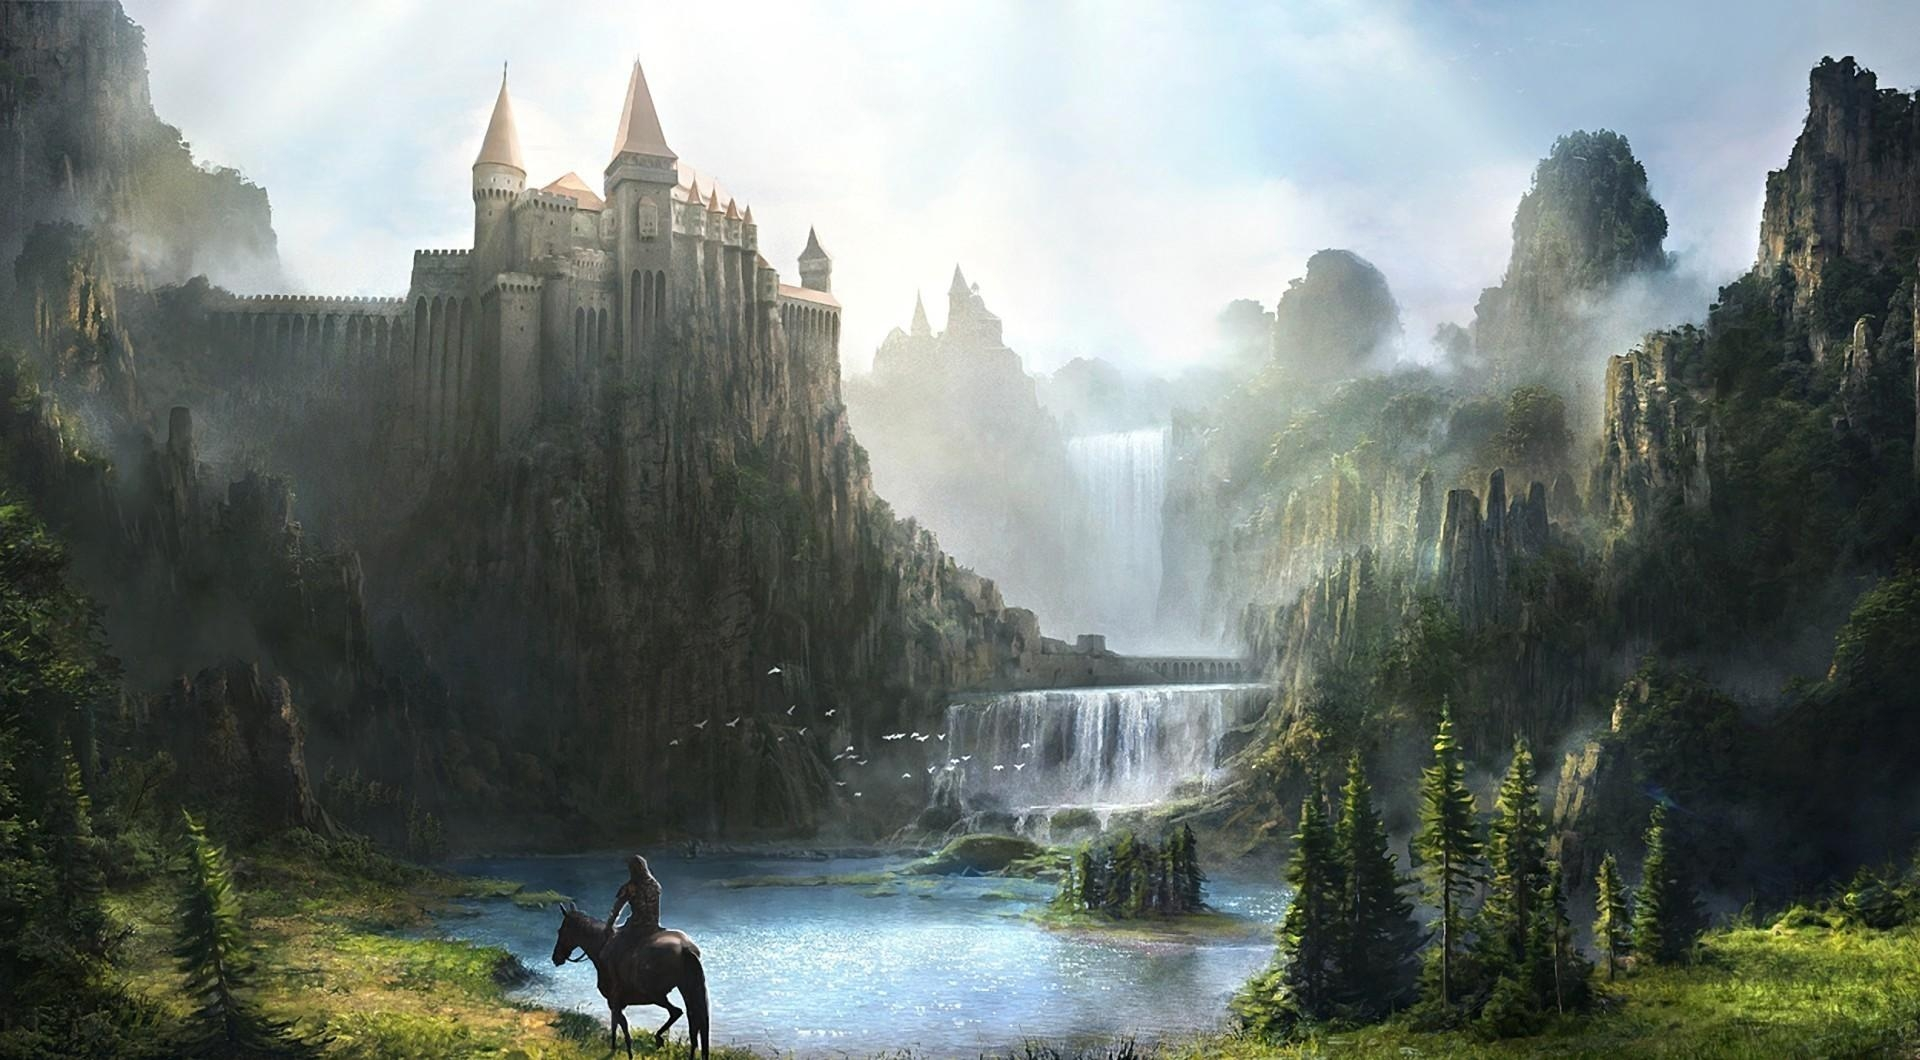 103597 download wallpaper Fantasy, Mountains, Lock, Waterfall, Greens, Rider, Horseman screensavers and pictures for free